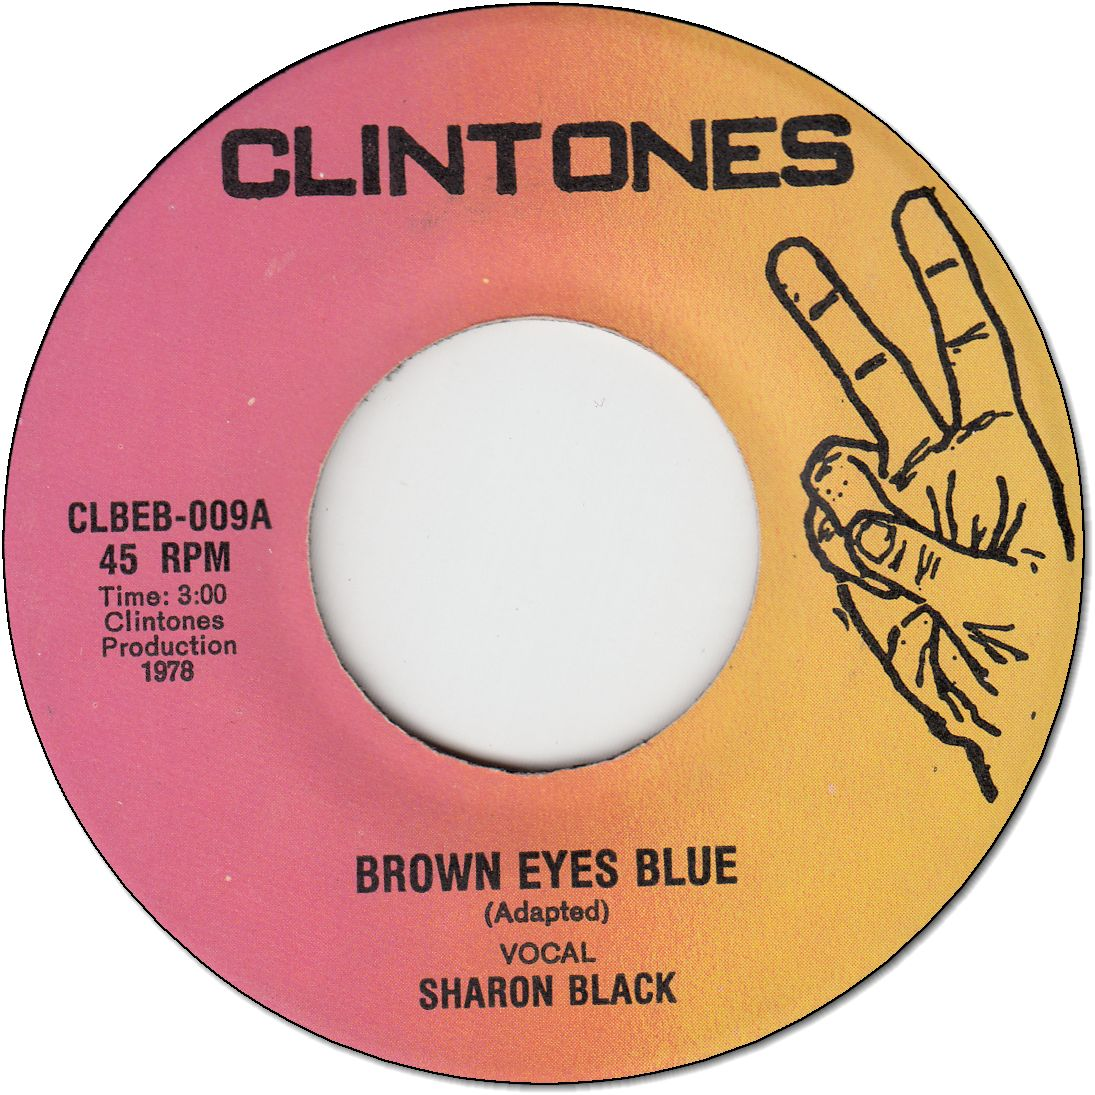 BROWN EYES BLUE (VG+)